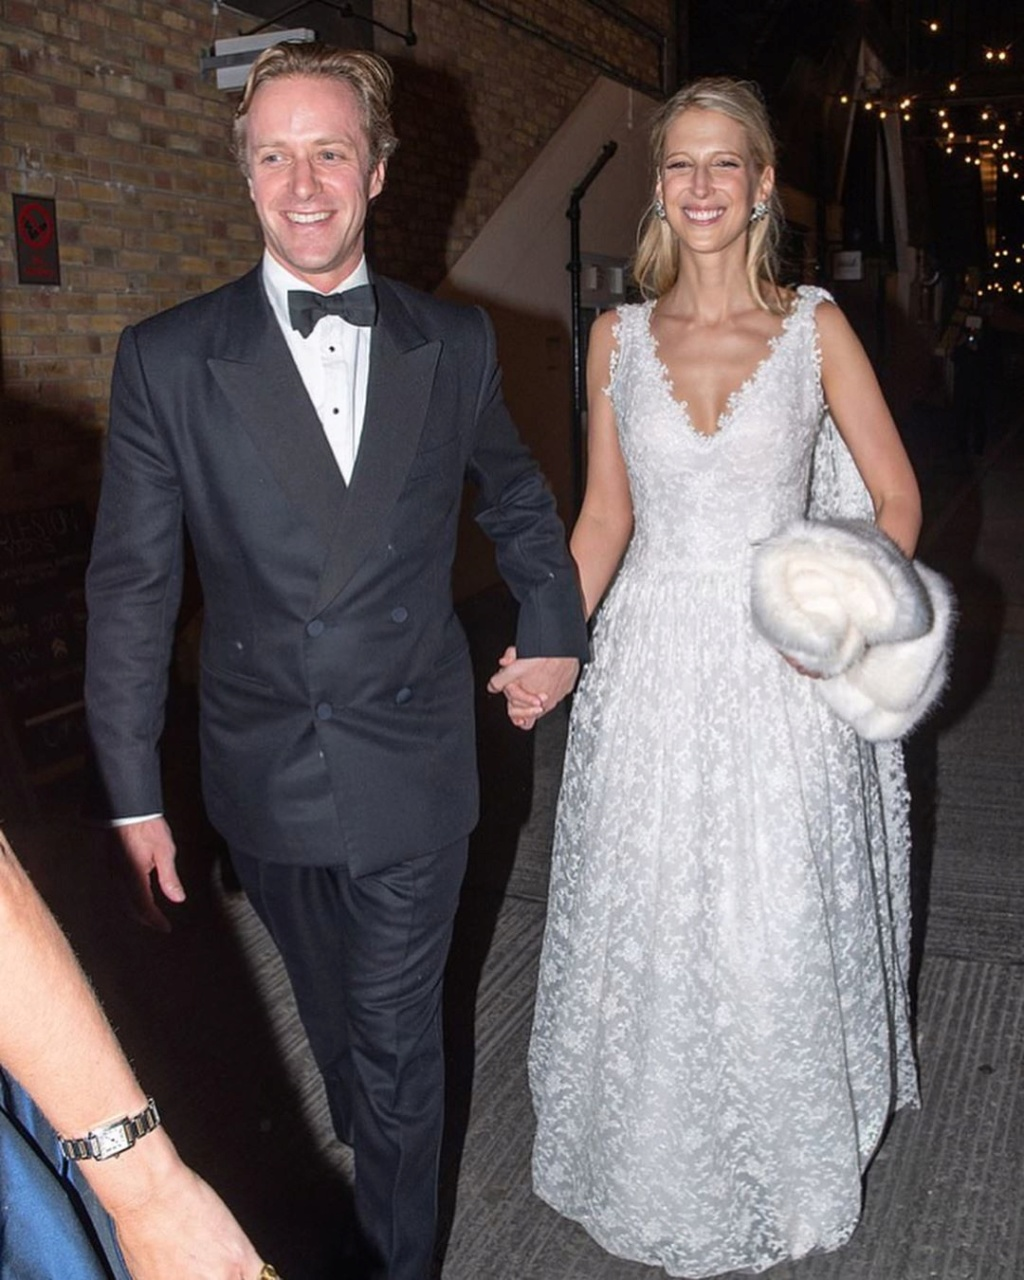 BODA DE LADY GABRIELLA WINDSOR Y THOMAS KINGSTON. EL 18/05 - Página 6 Foto3135